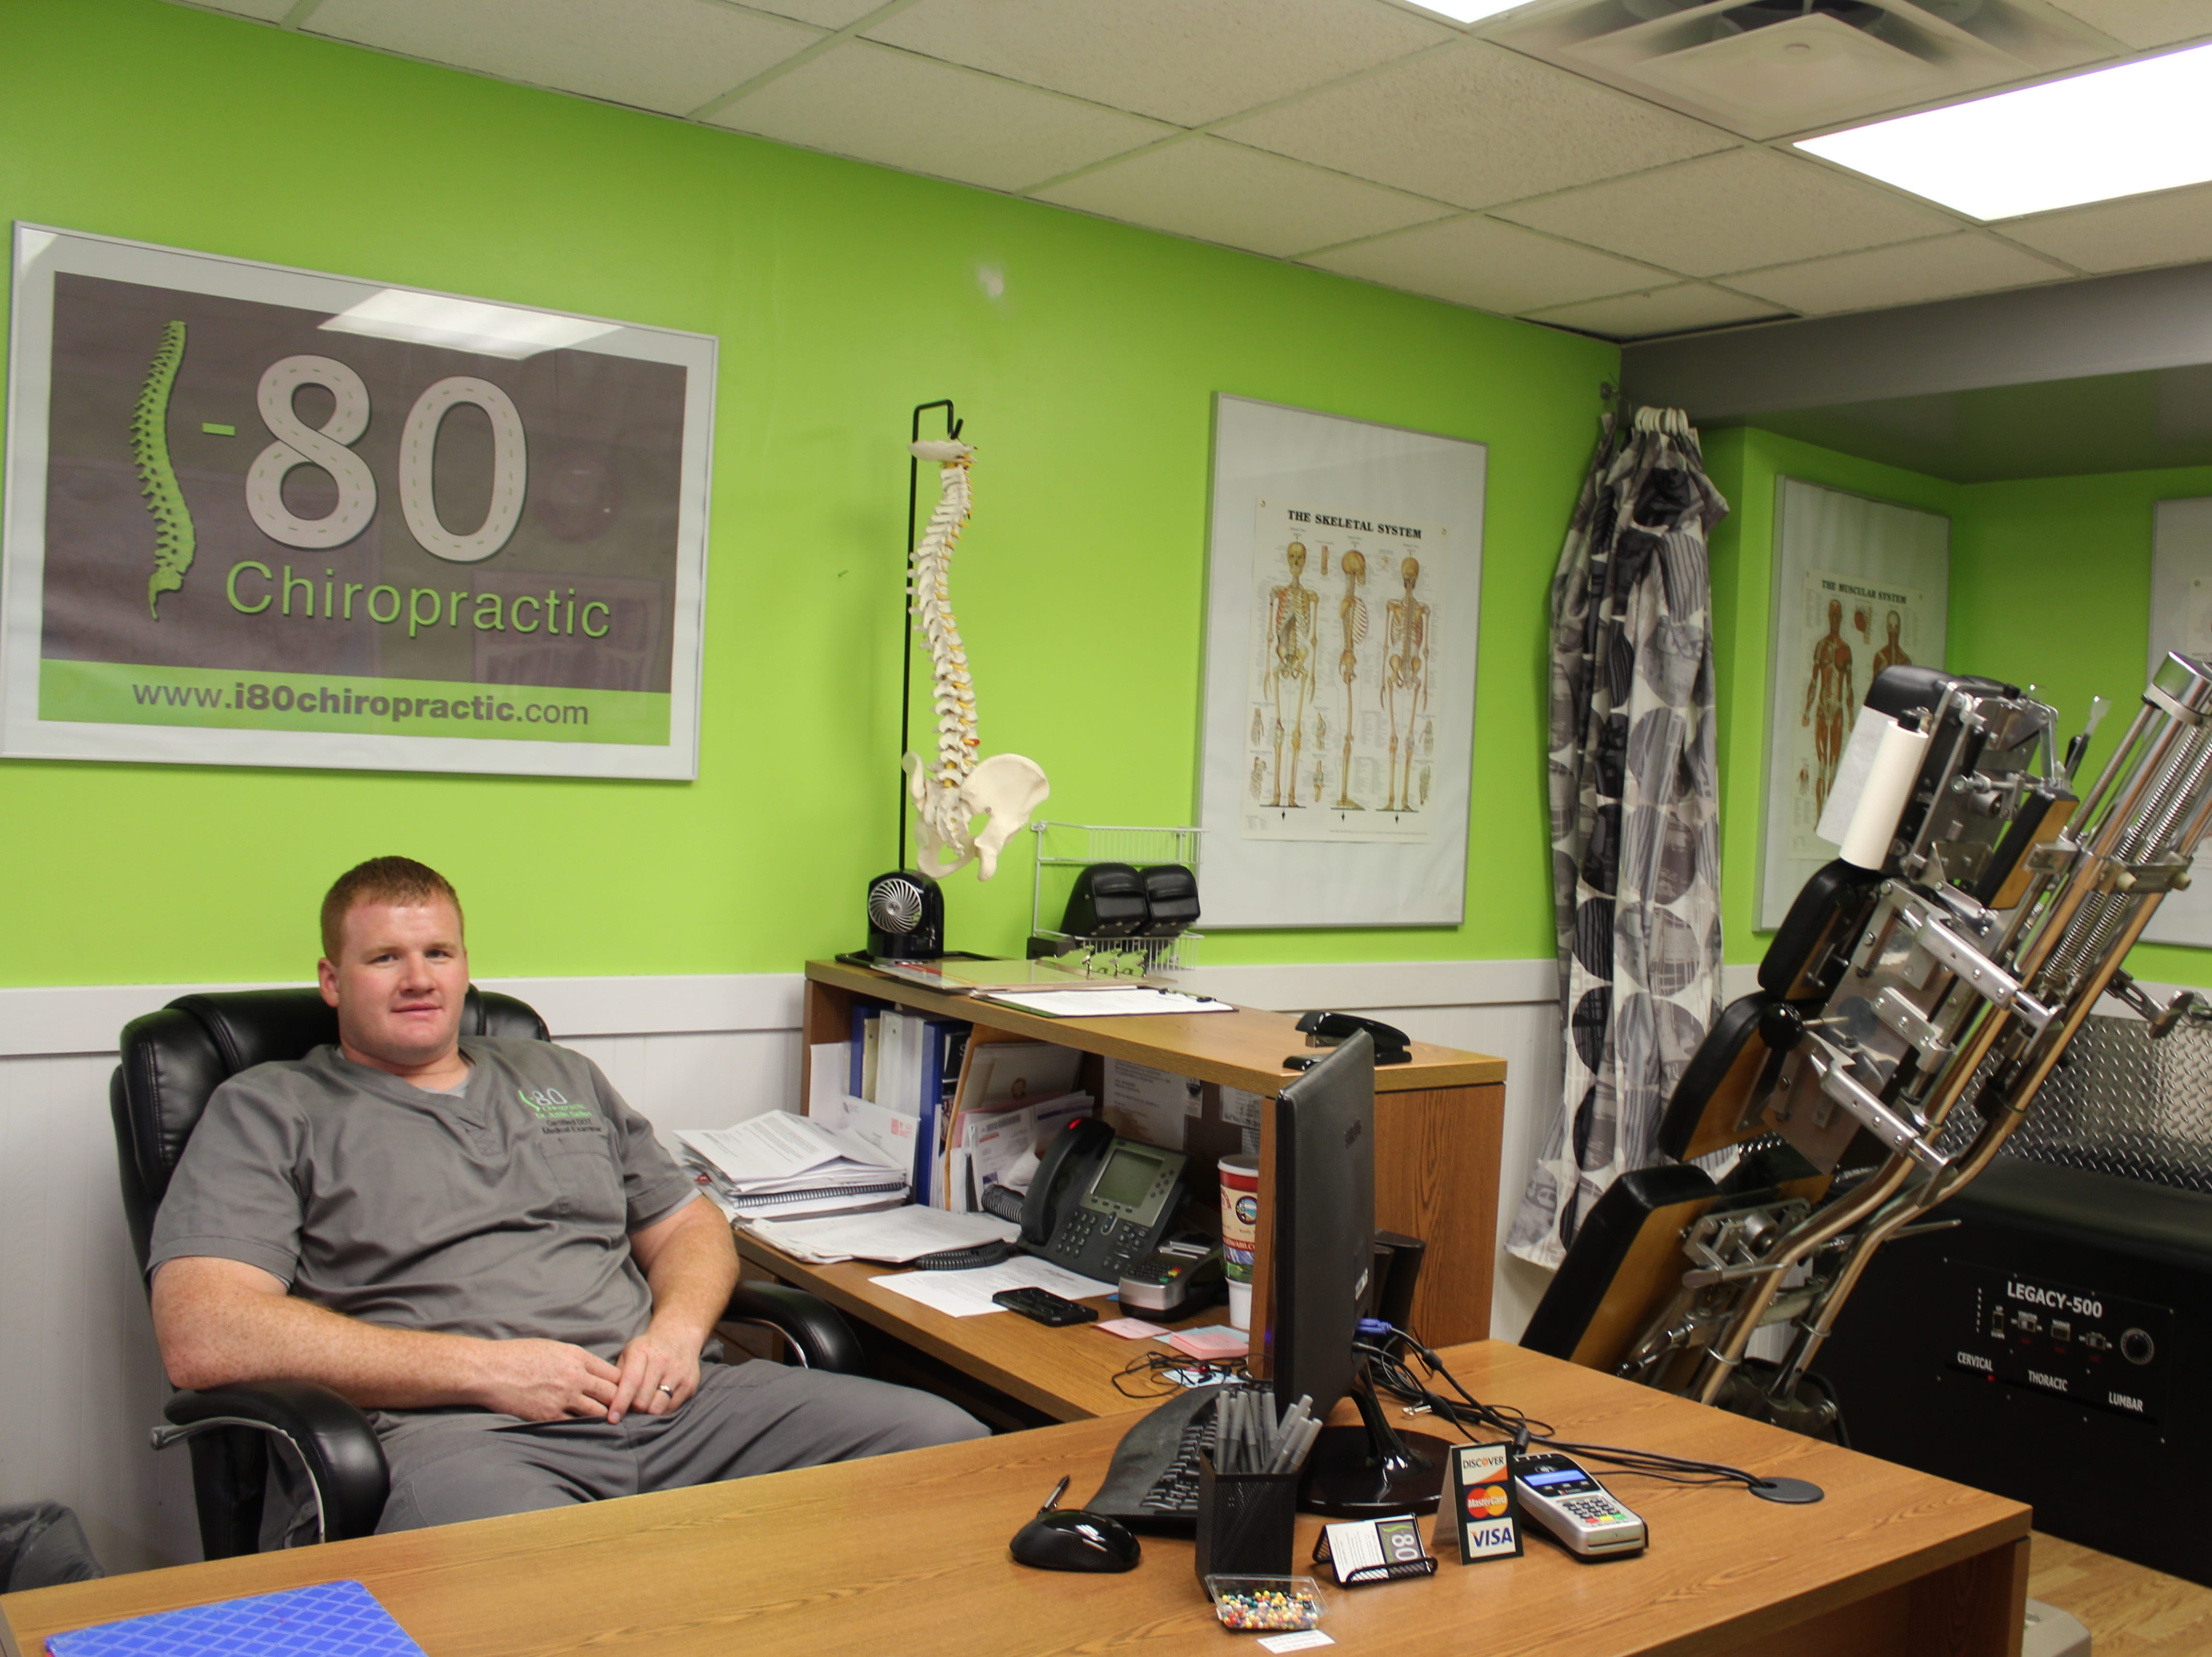 Chiropractor Justin Seifert takes walk-ins at his office in the Iowa 80 truck stop.